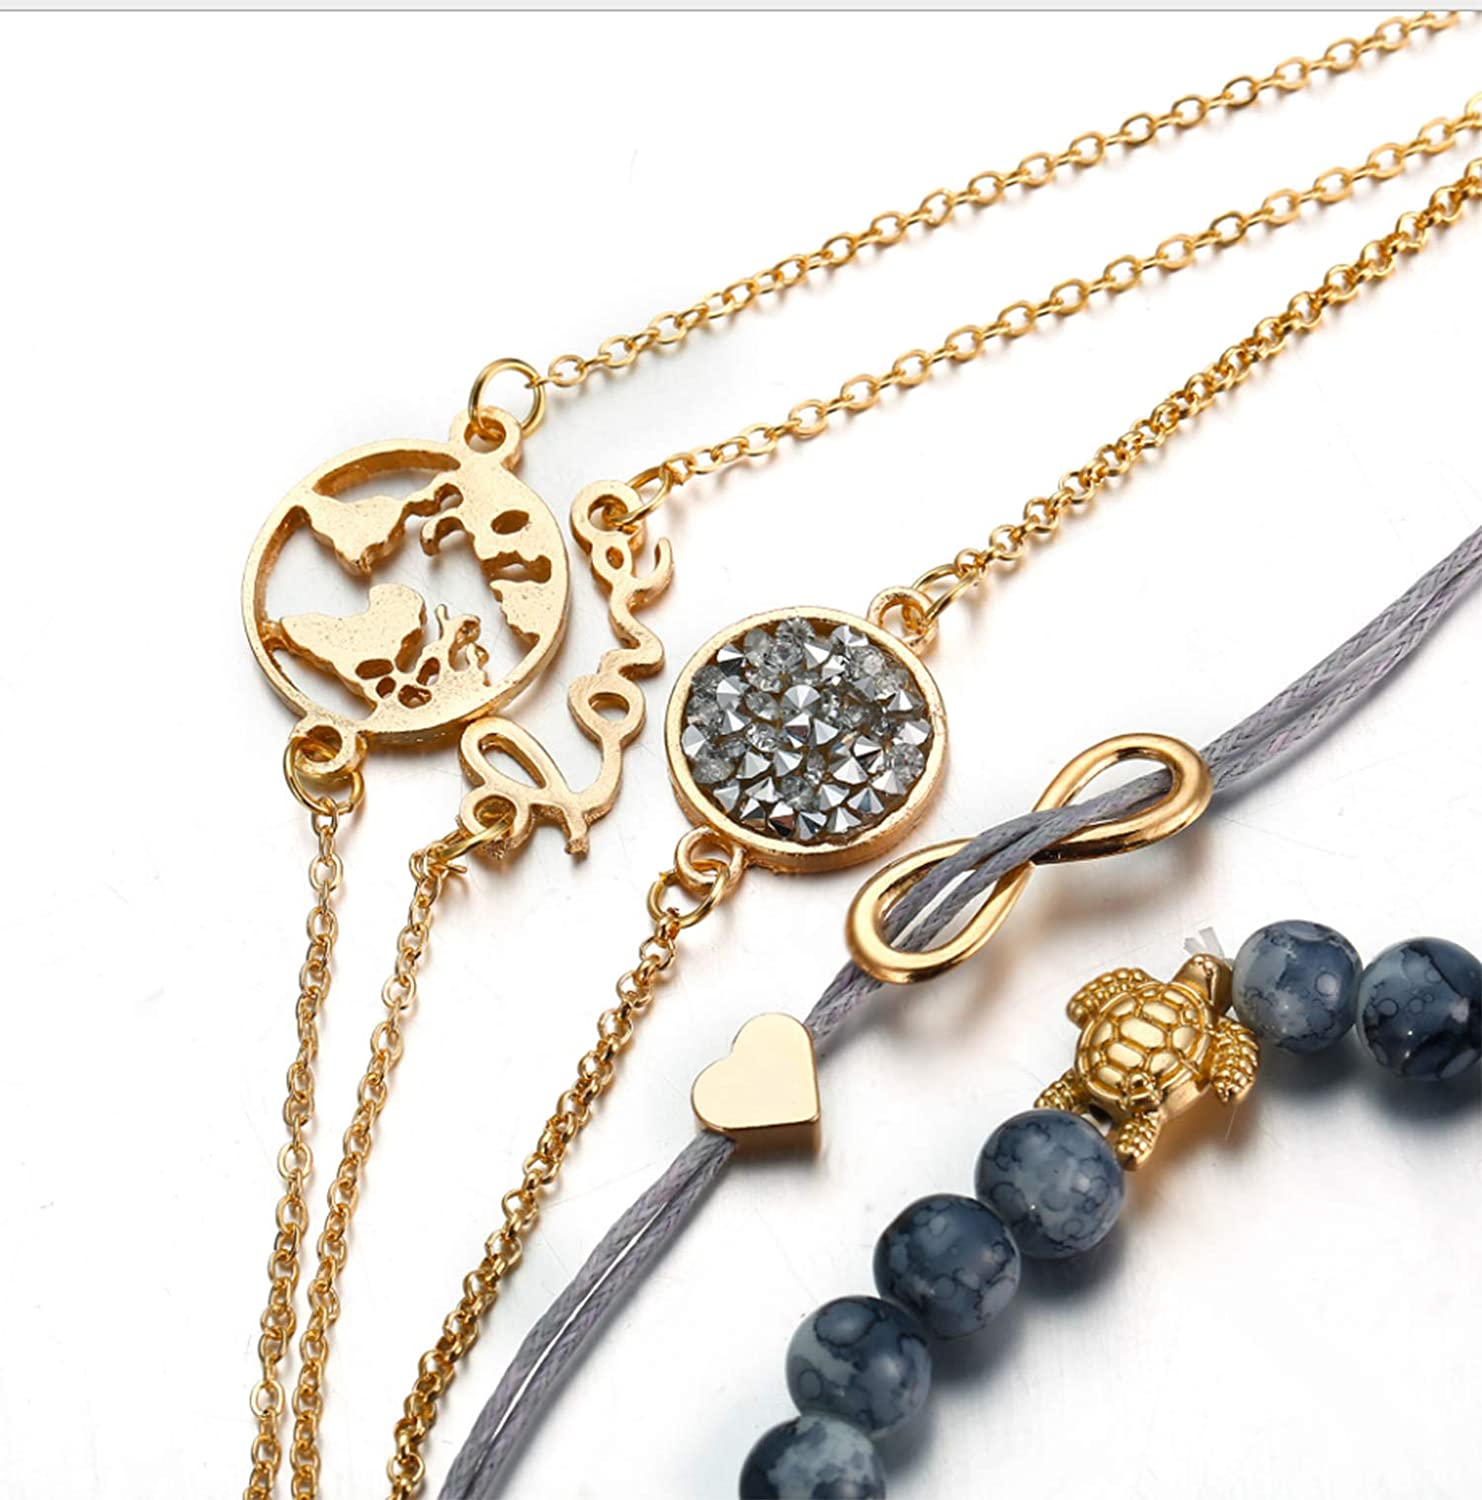 Valentines Day Mutong Retro Vintage Hand 、Anklets Bracelet Bangle Wrist Band Hand 、Anklets Chain Charm